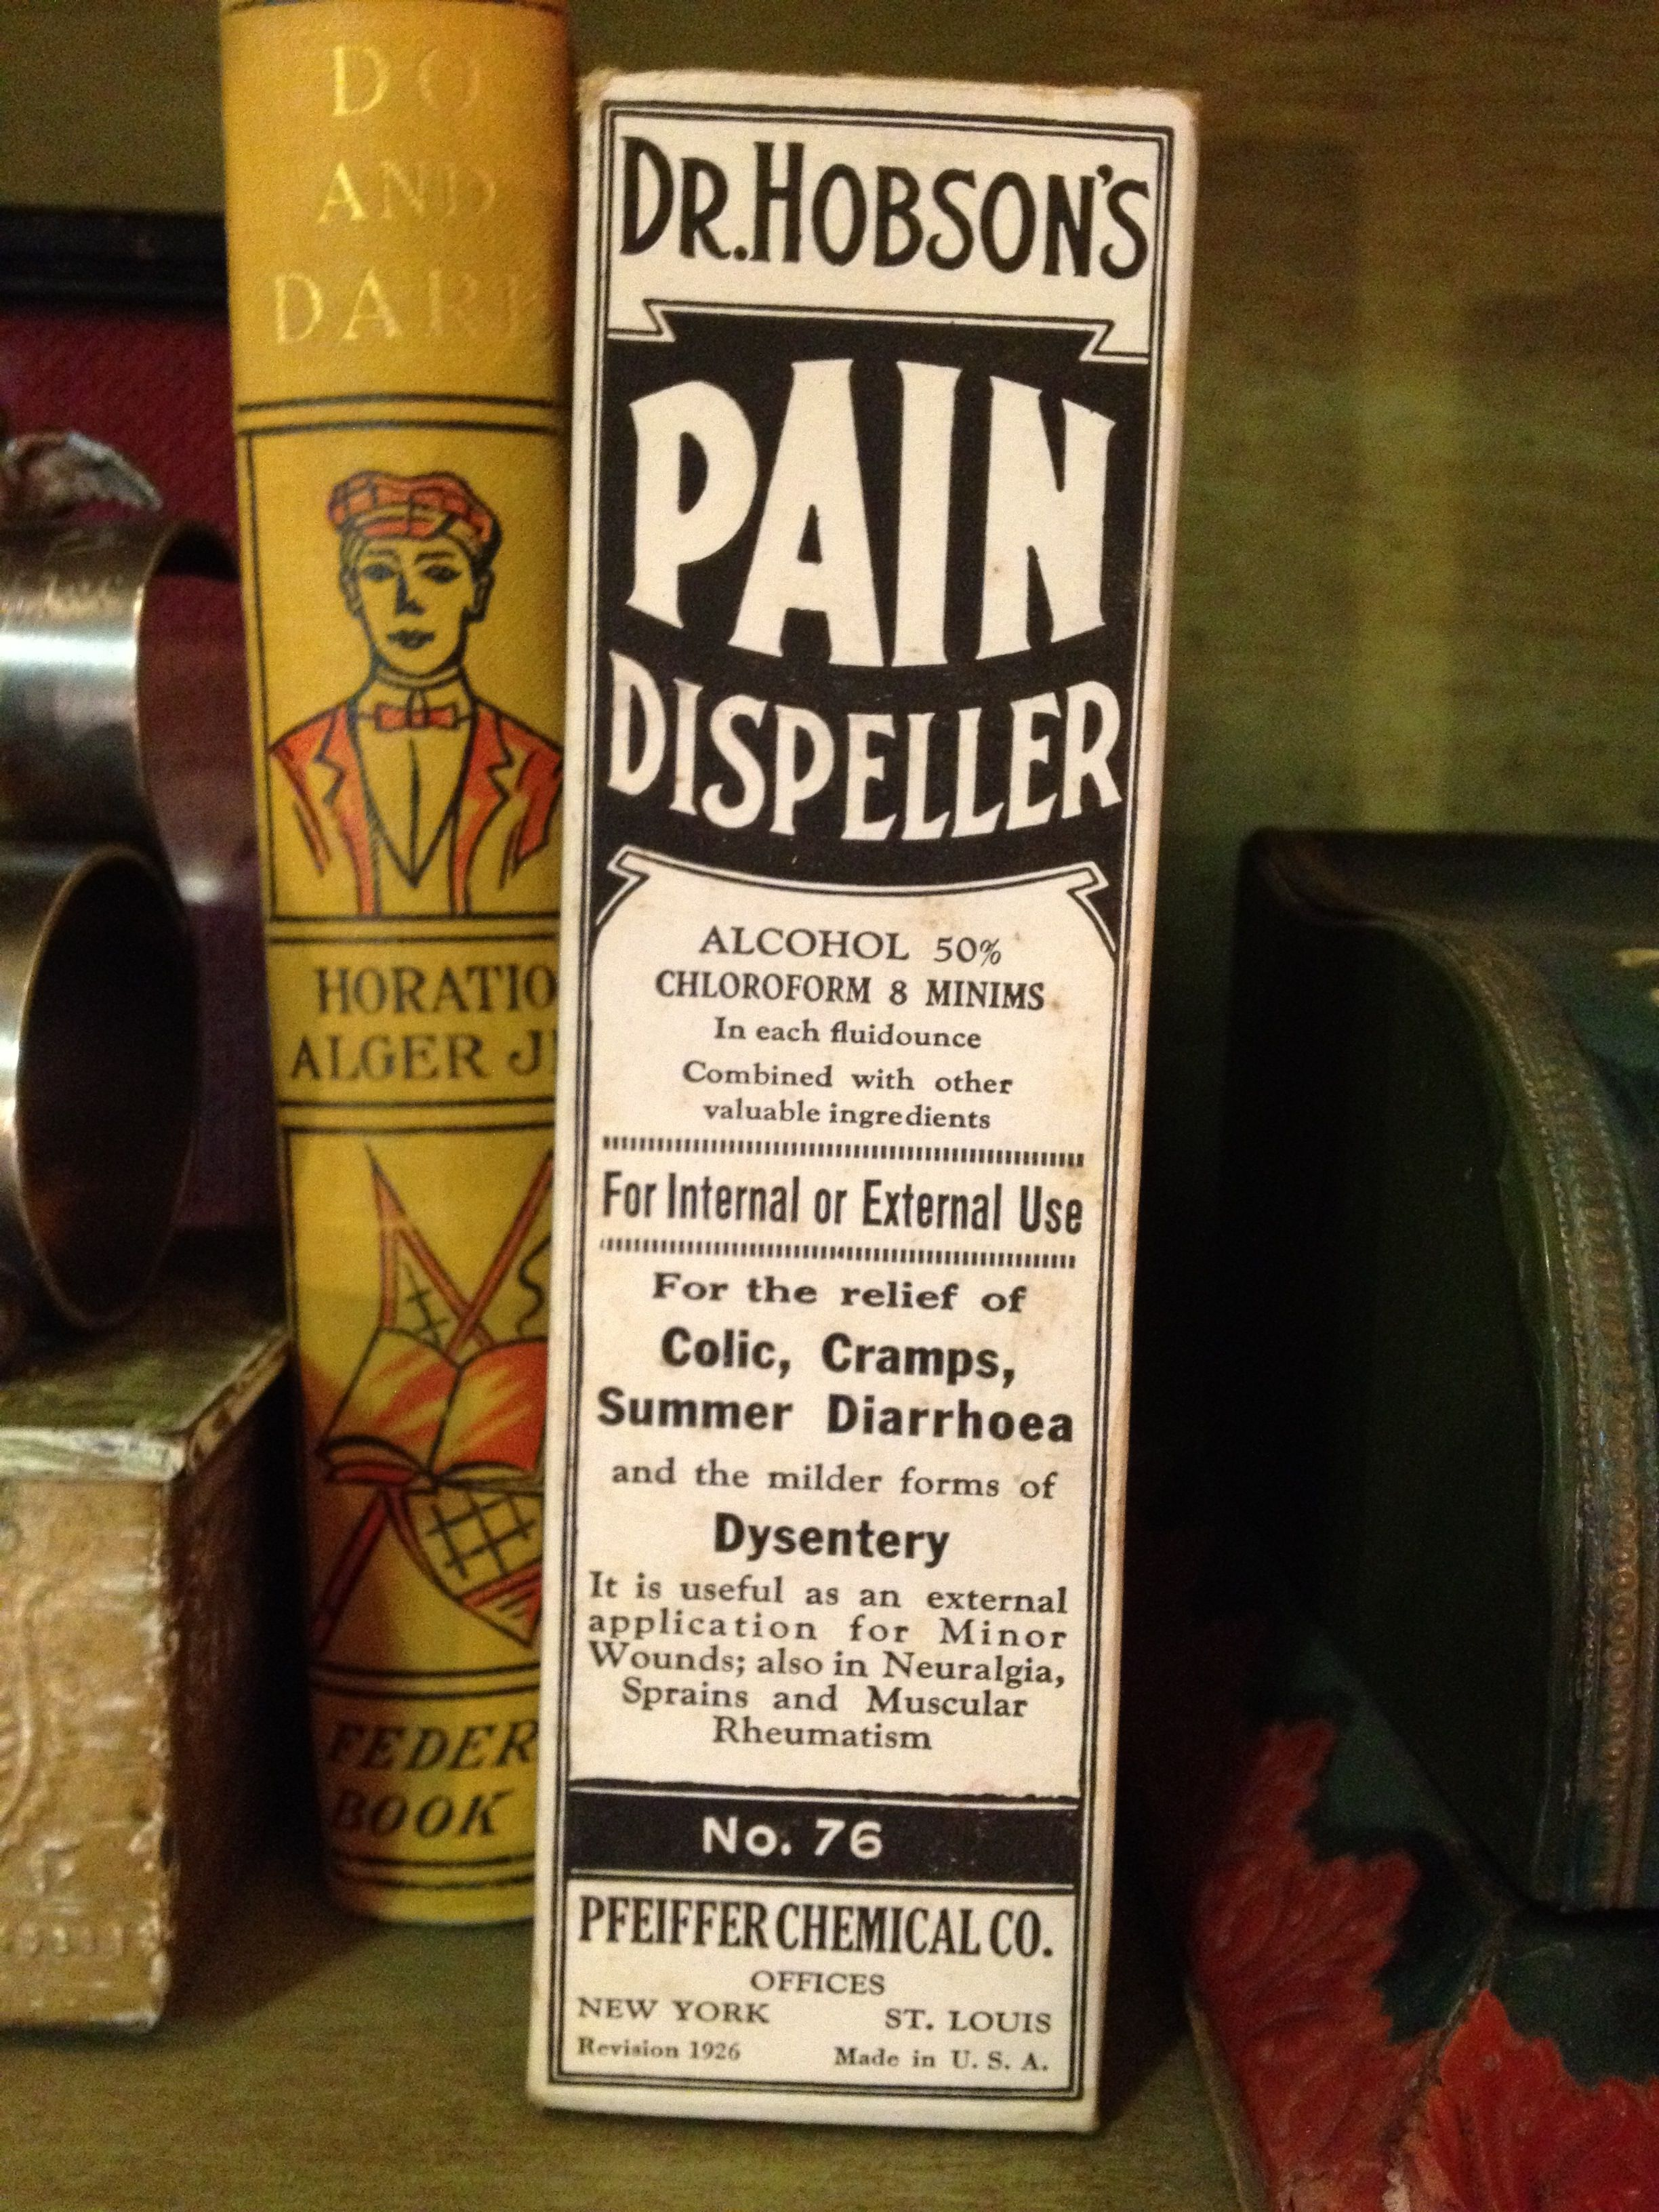 Vintage Medicine Woman Tarot Card Deck Carol By Back2theearth: Alcohol And Chloroform, Great Combo....I Like How It Calls